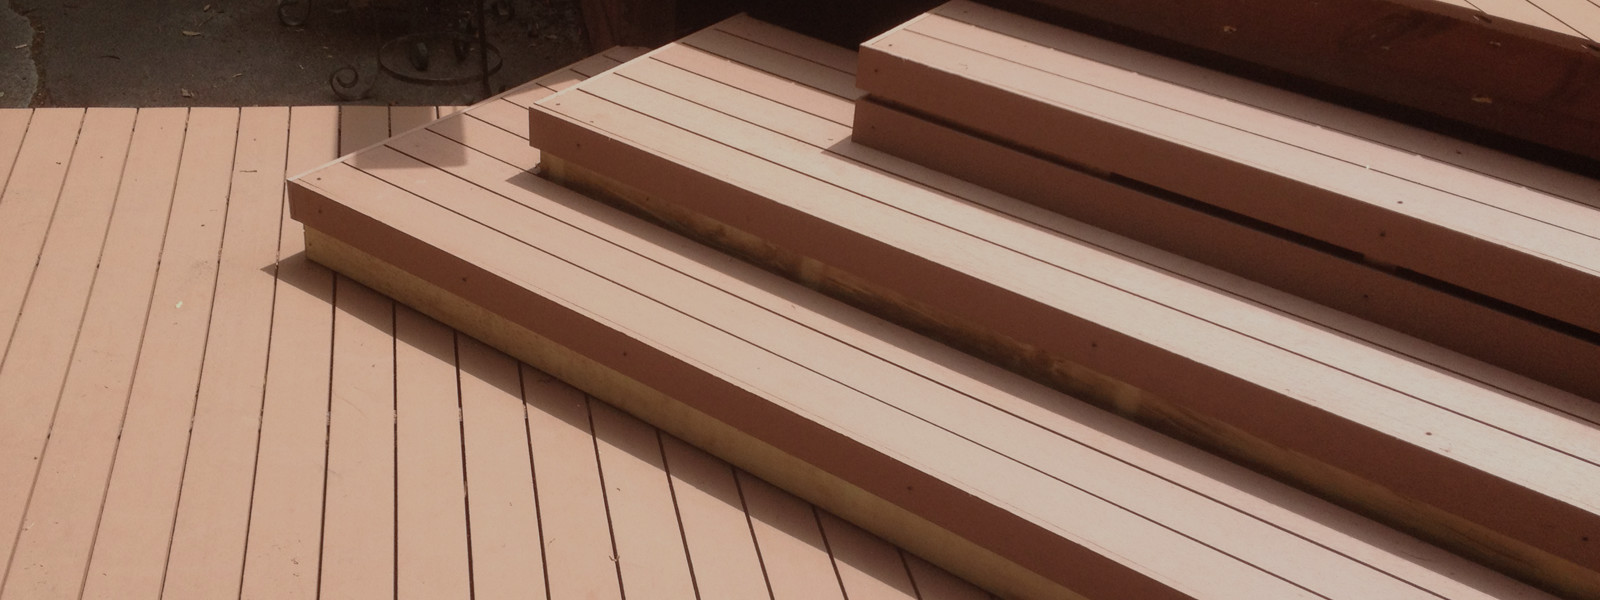 Title bg1 timberlast for Non wood decking material